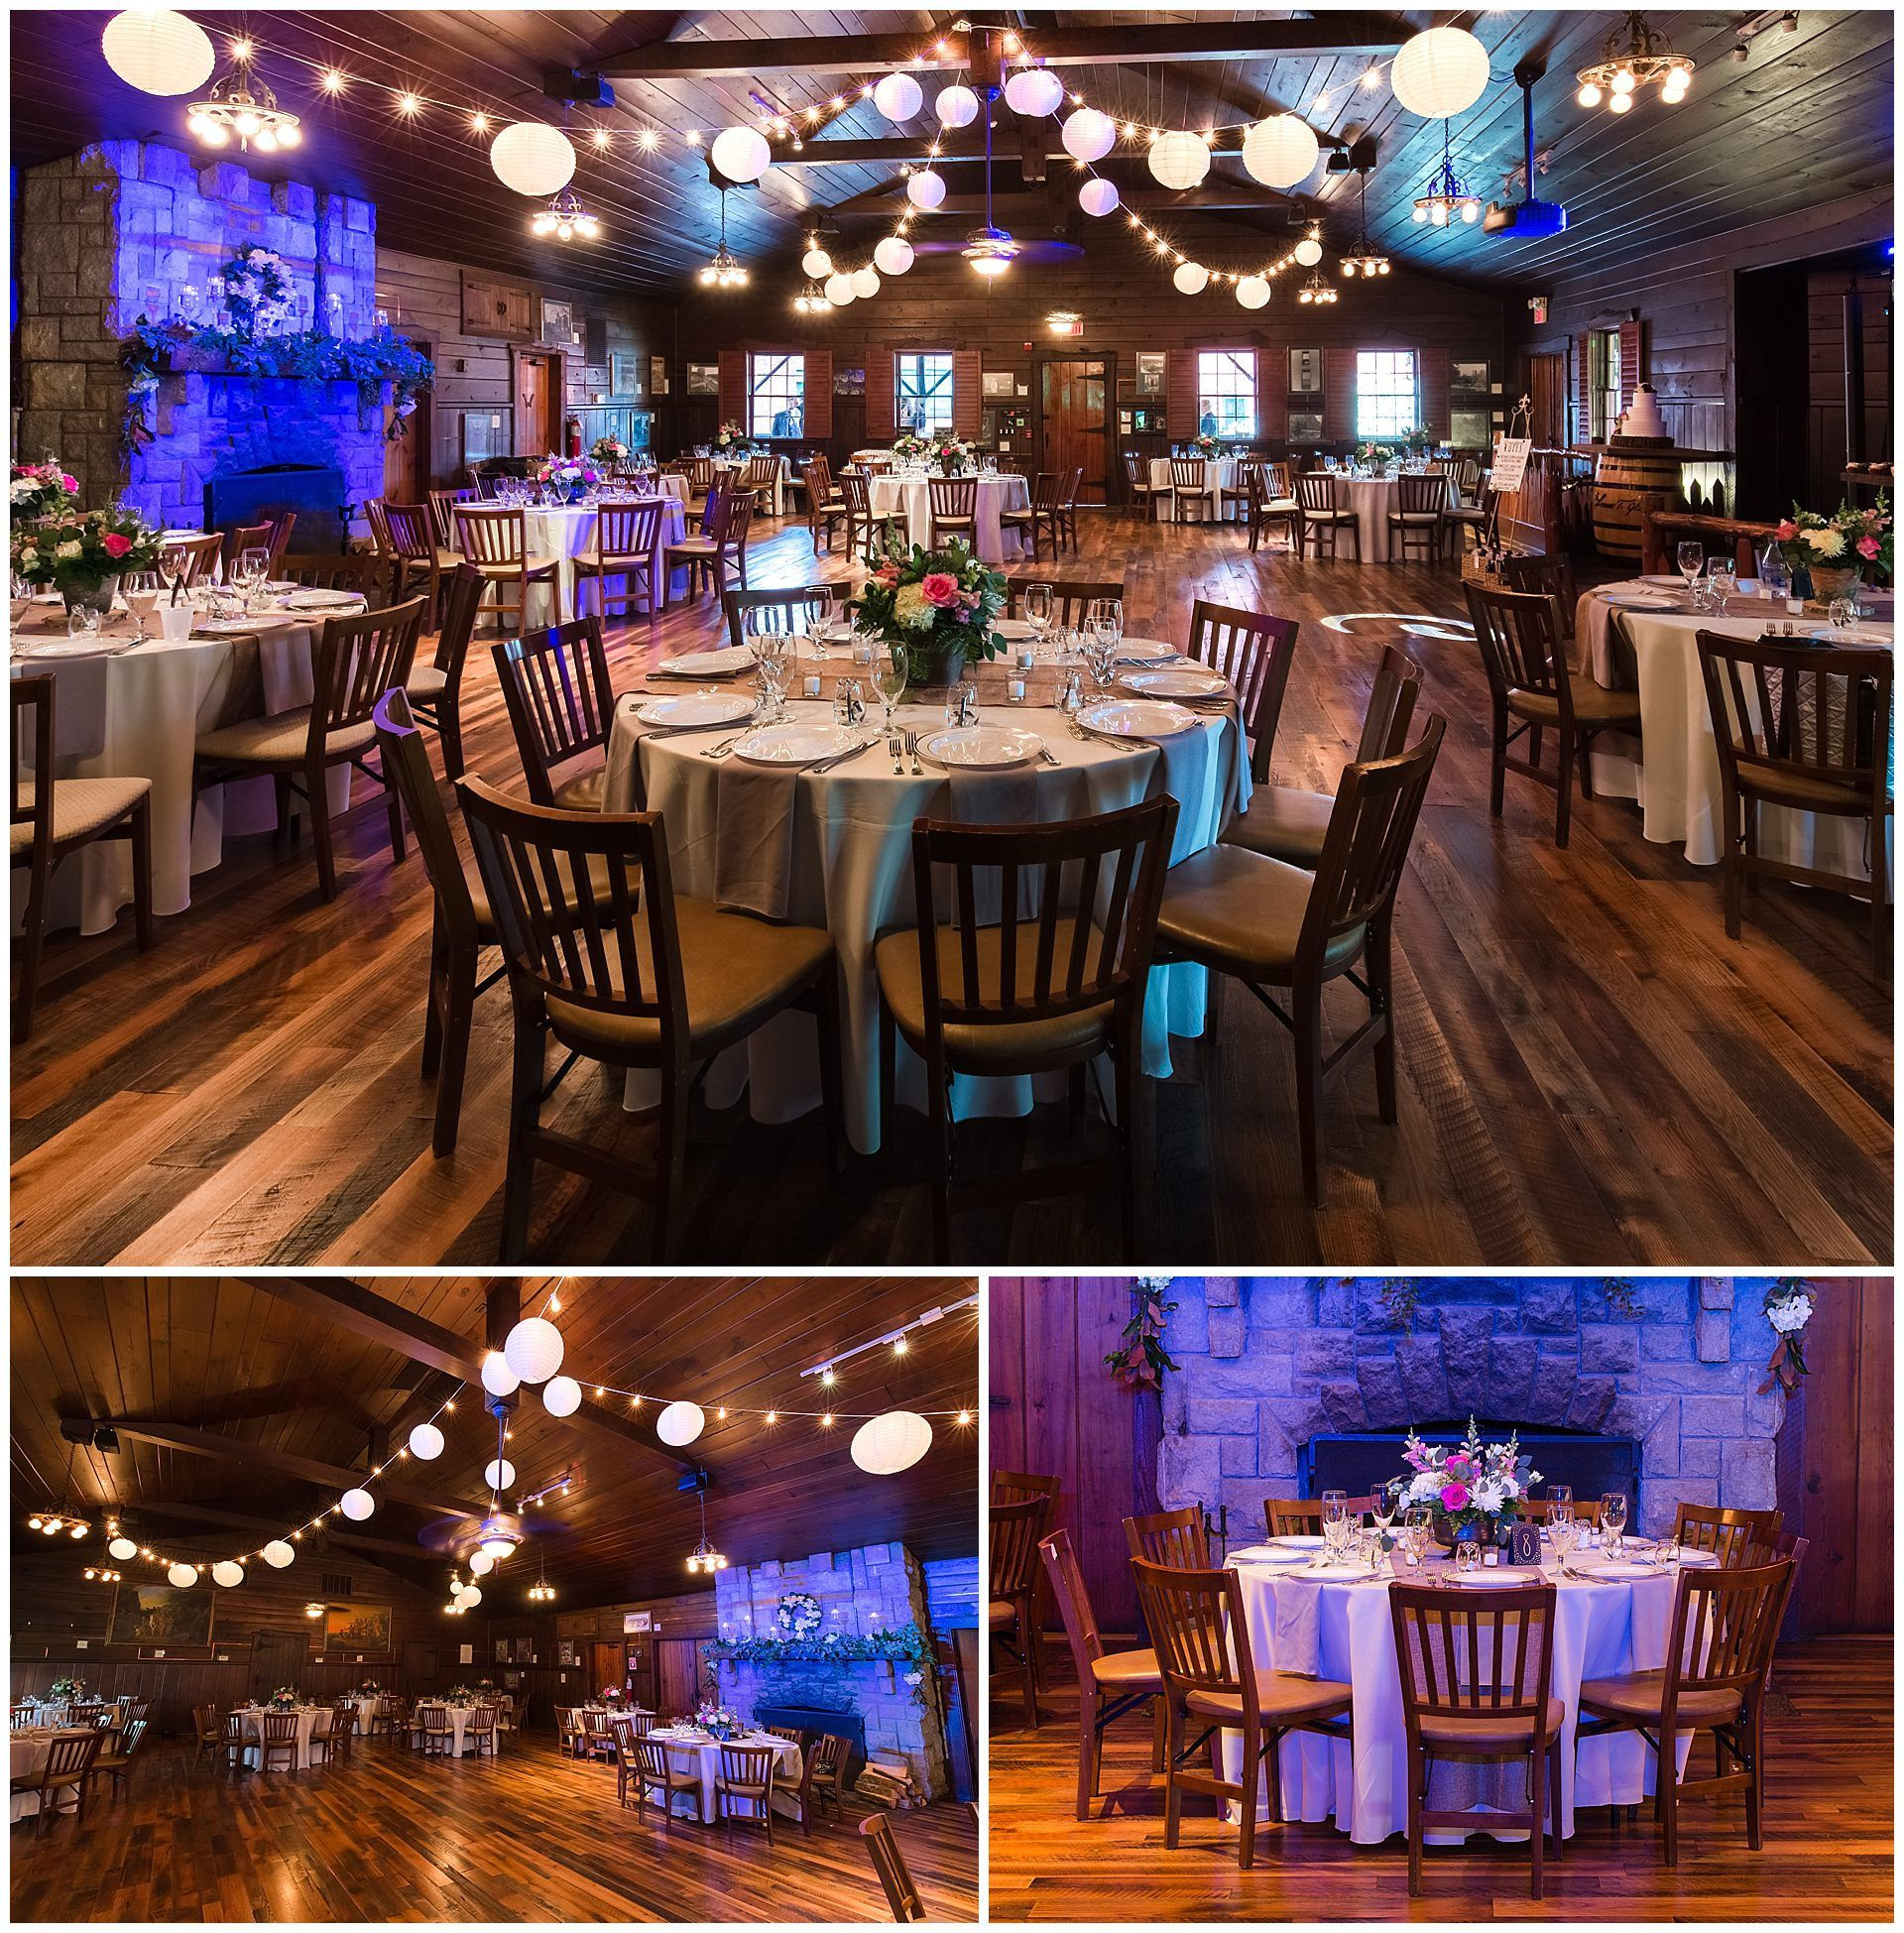 Indian Wedding Reception Food Menu: Spring Wedding At Buffalo Trace Distillery In Frankfort